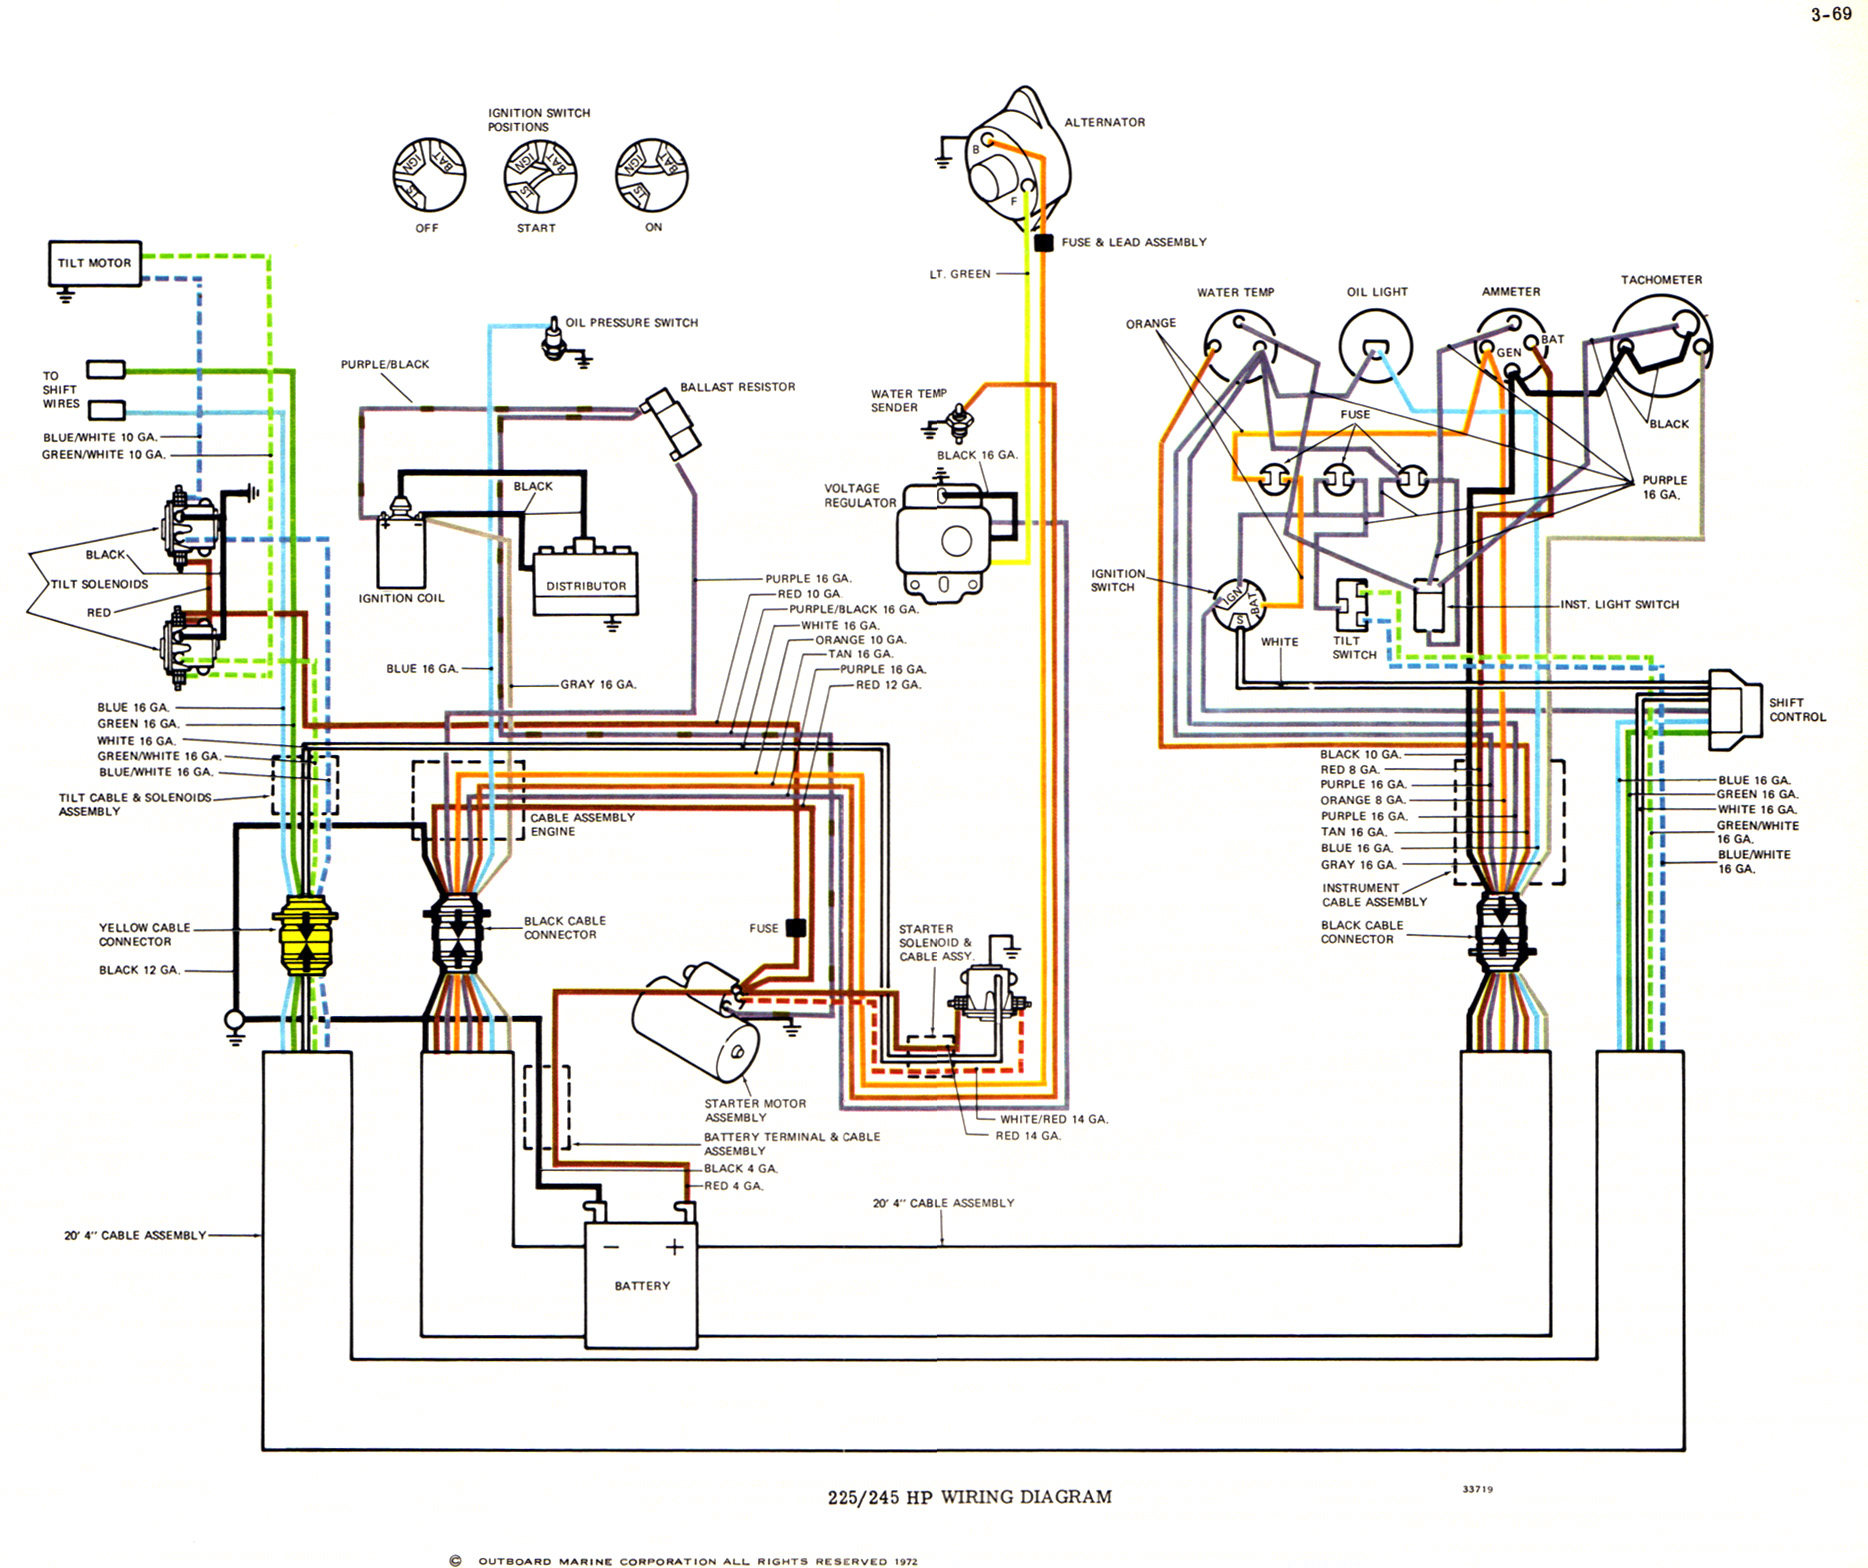 wrg 7045] evinrude 250 wiring diagramv6 crossflow omc wiring diagram detailed wiring diagrams johnson evinrude control box diagram evinrude 250 wiring